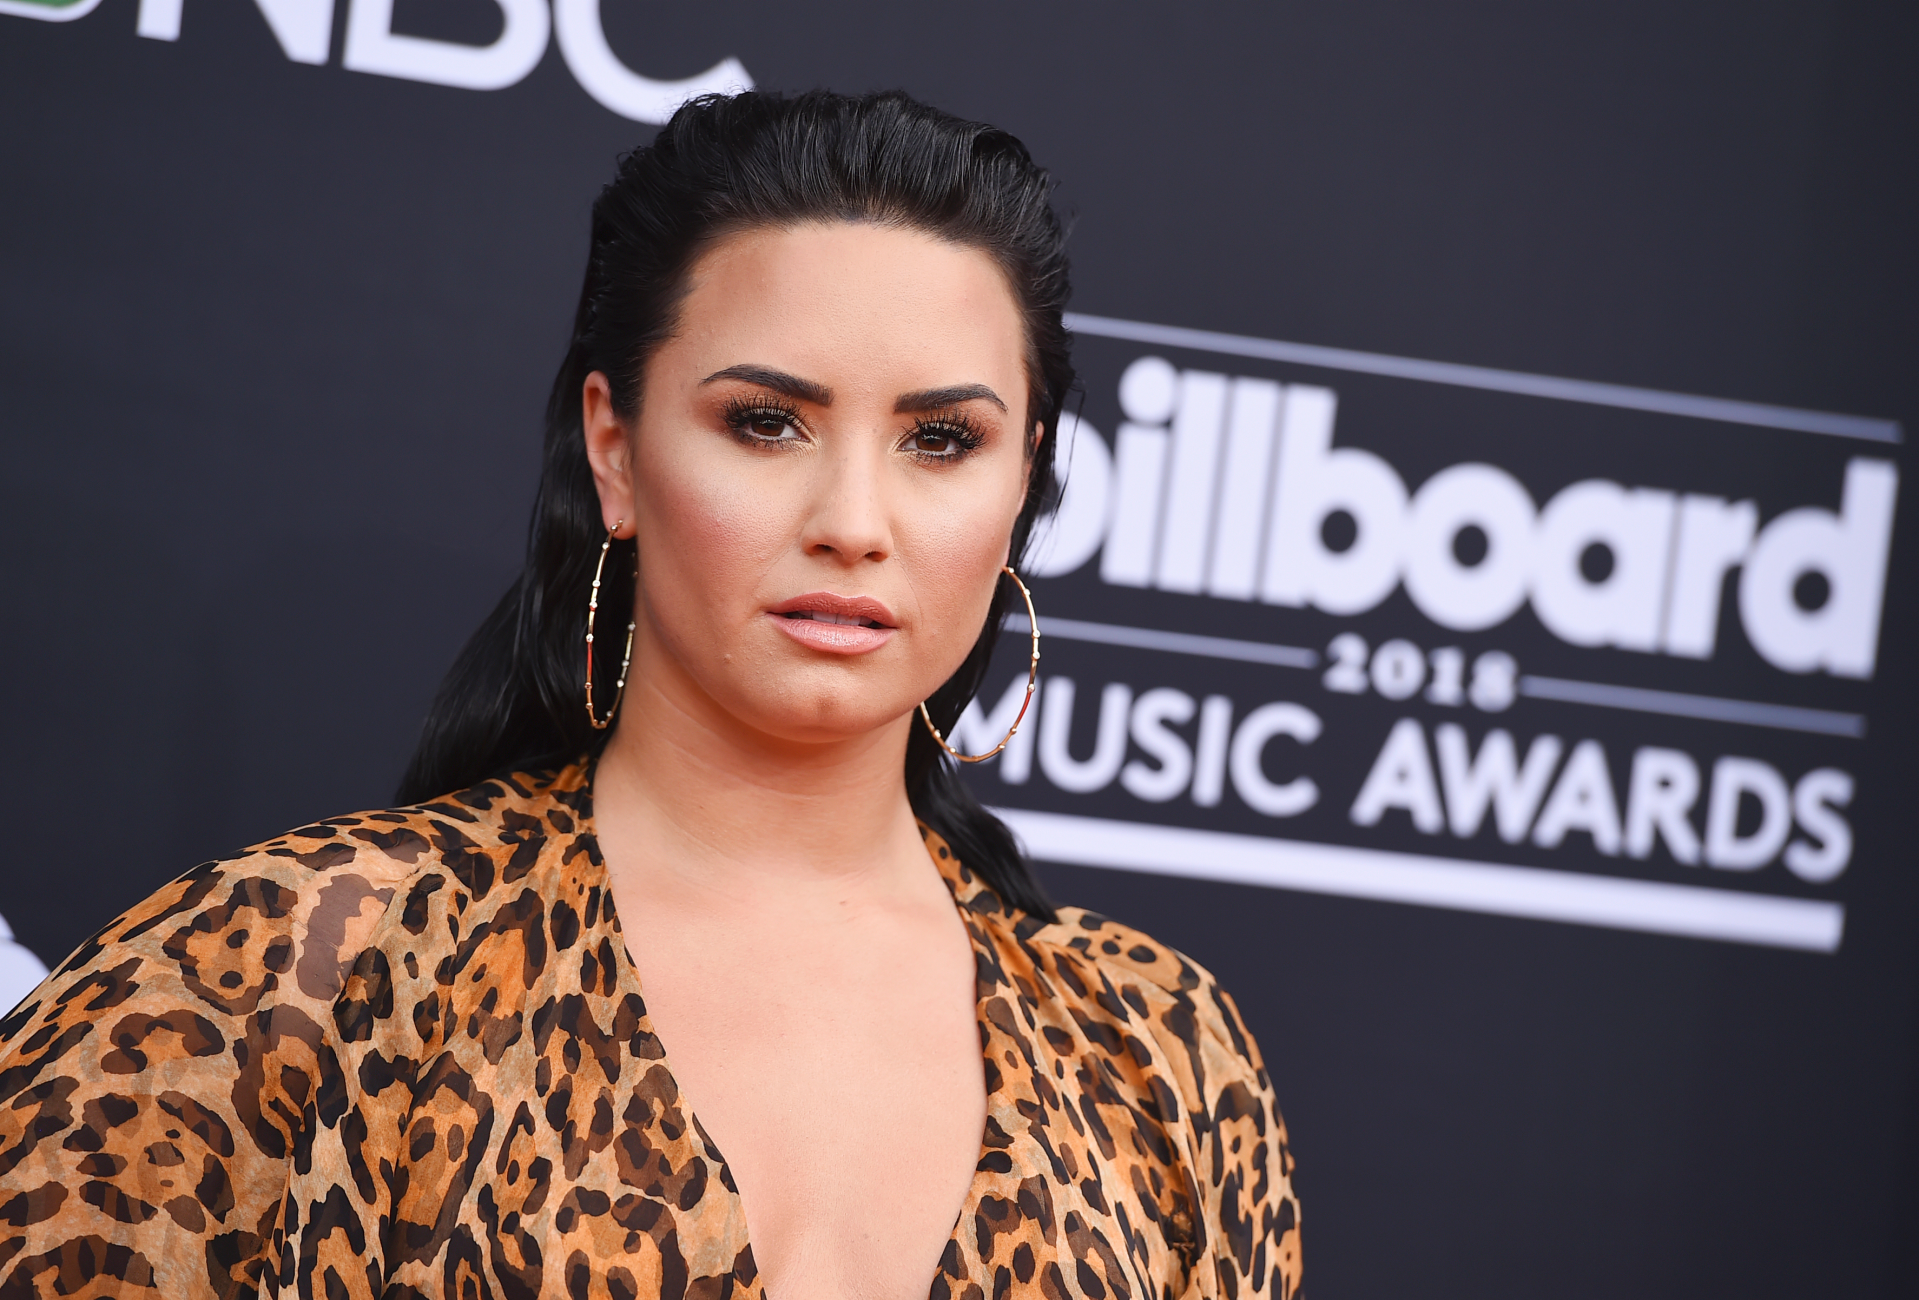 Demi Lovato's 'Sorry, Not Sorry' apology called out by frozen yogurt shop, denies star donated - Fox News